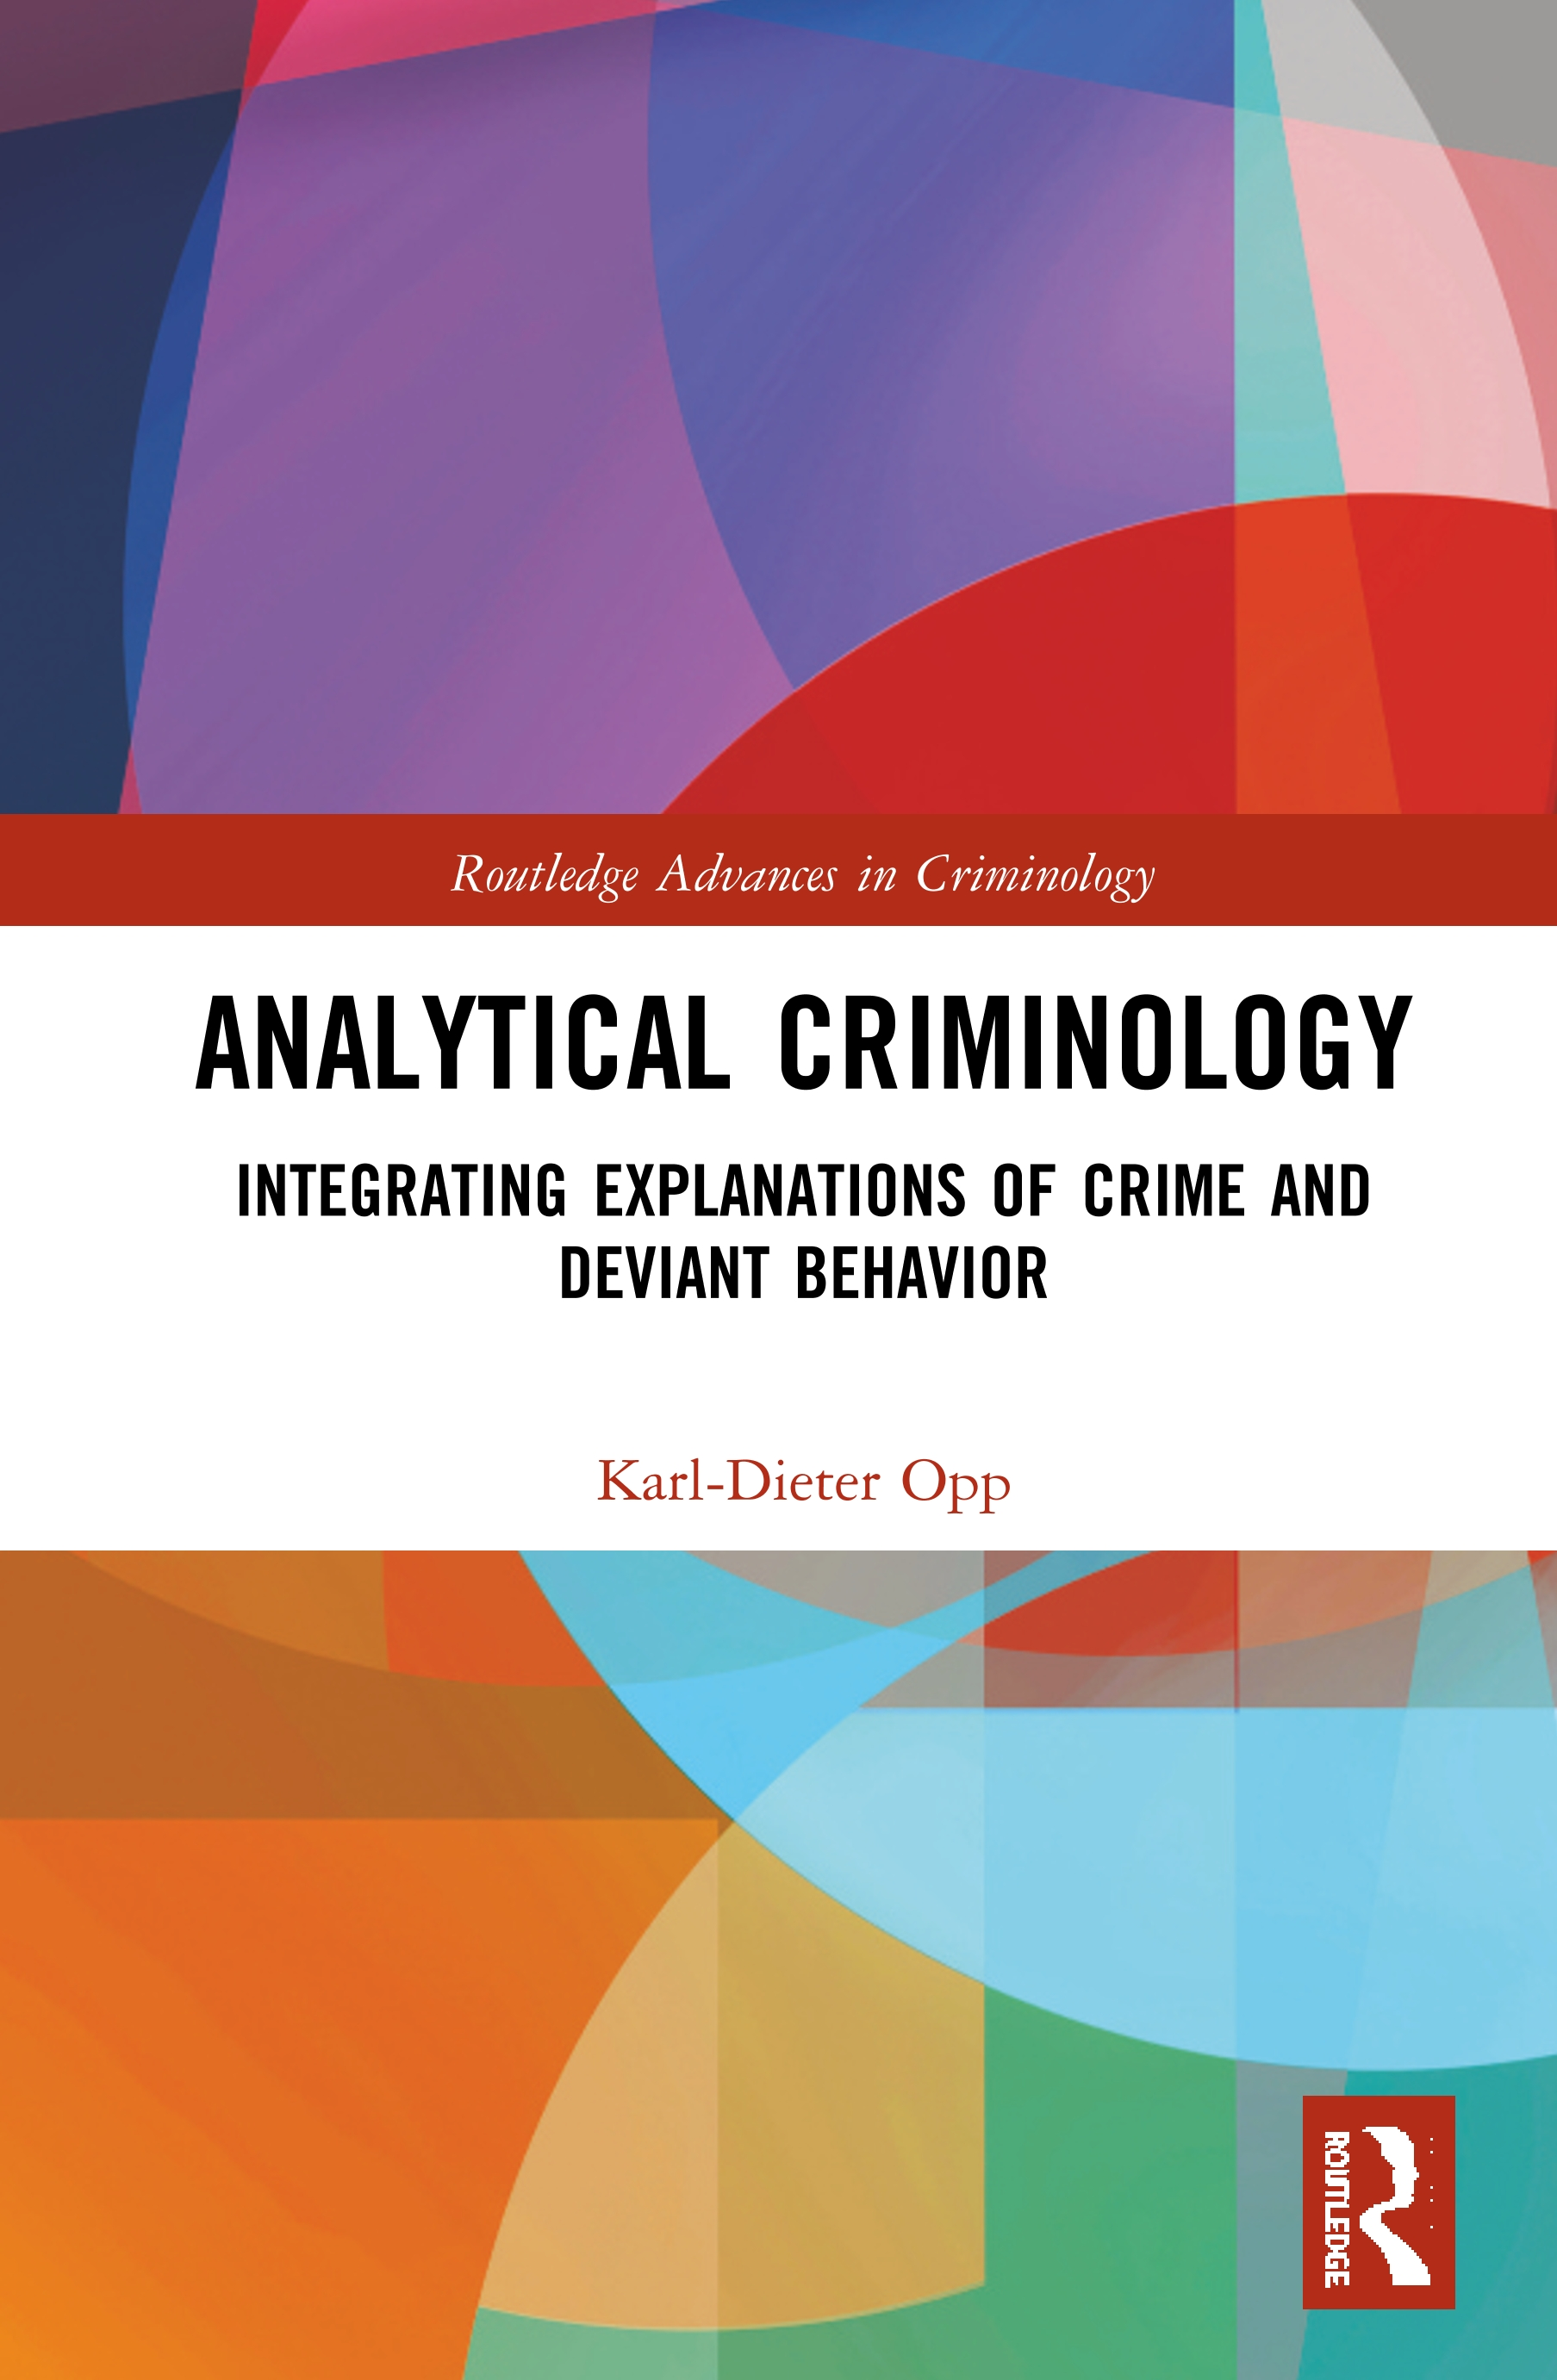 Analytical Criminology: Integrating Explanations of Crime and Deviant Behavior book cover